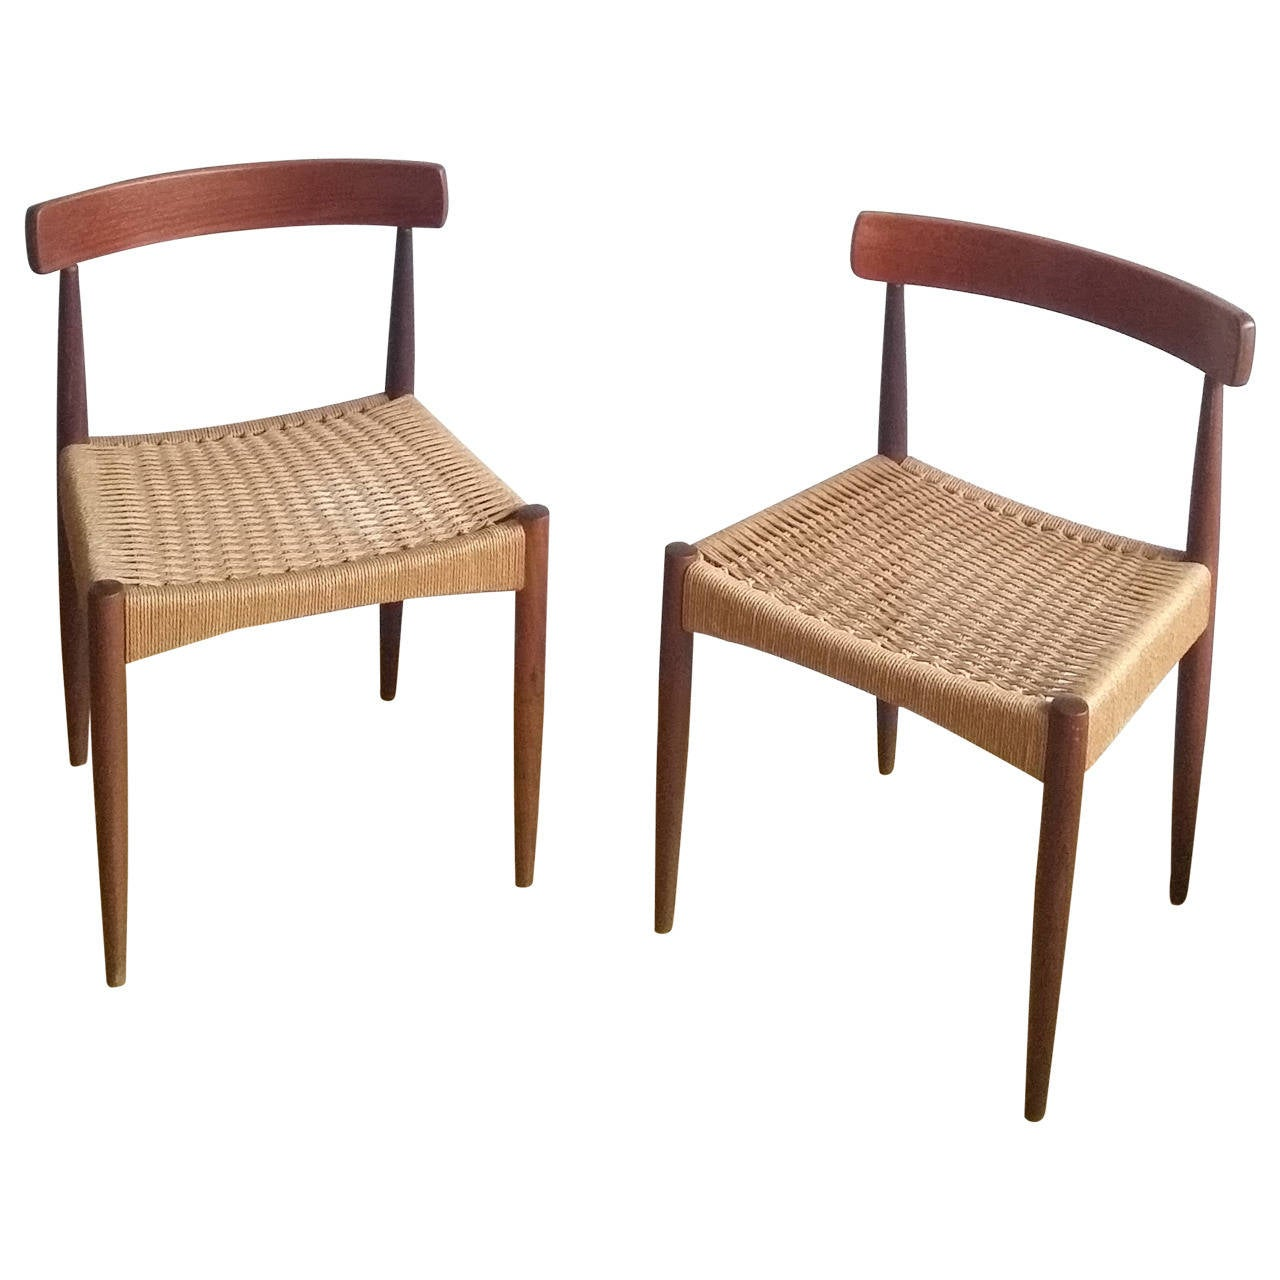 Pair of Signed Danish MK Chairs Denmark 1960s at 1stdibs